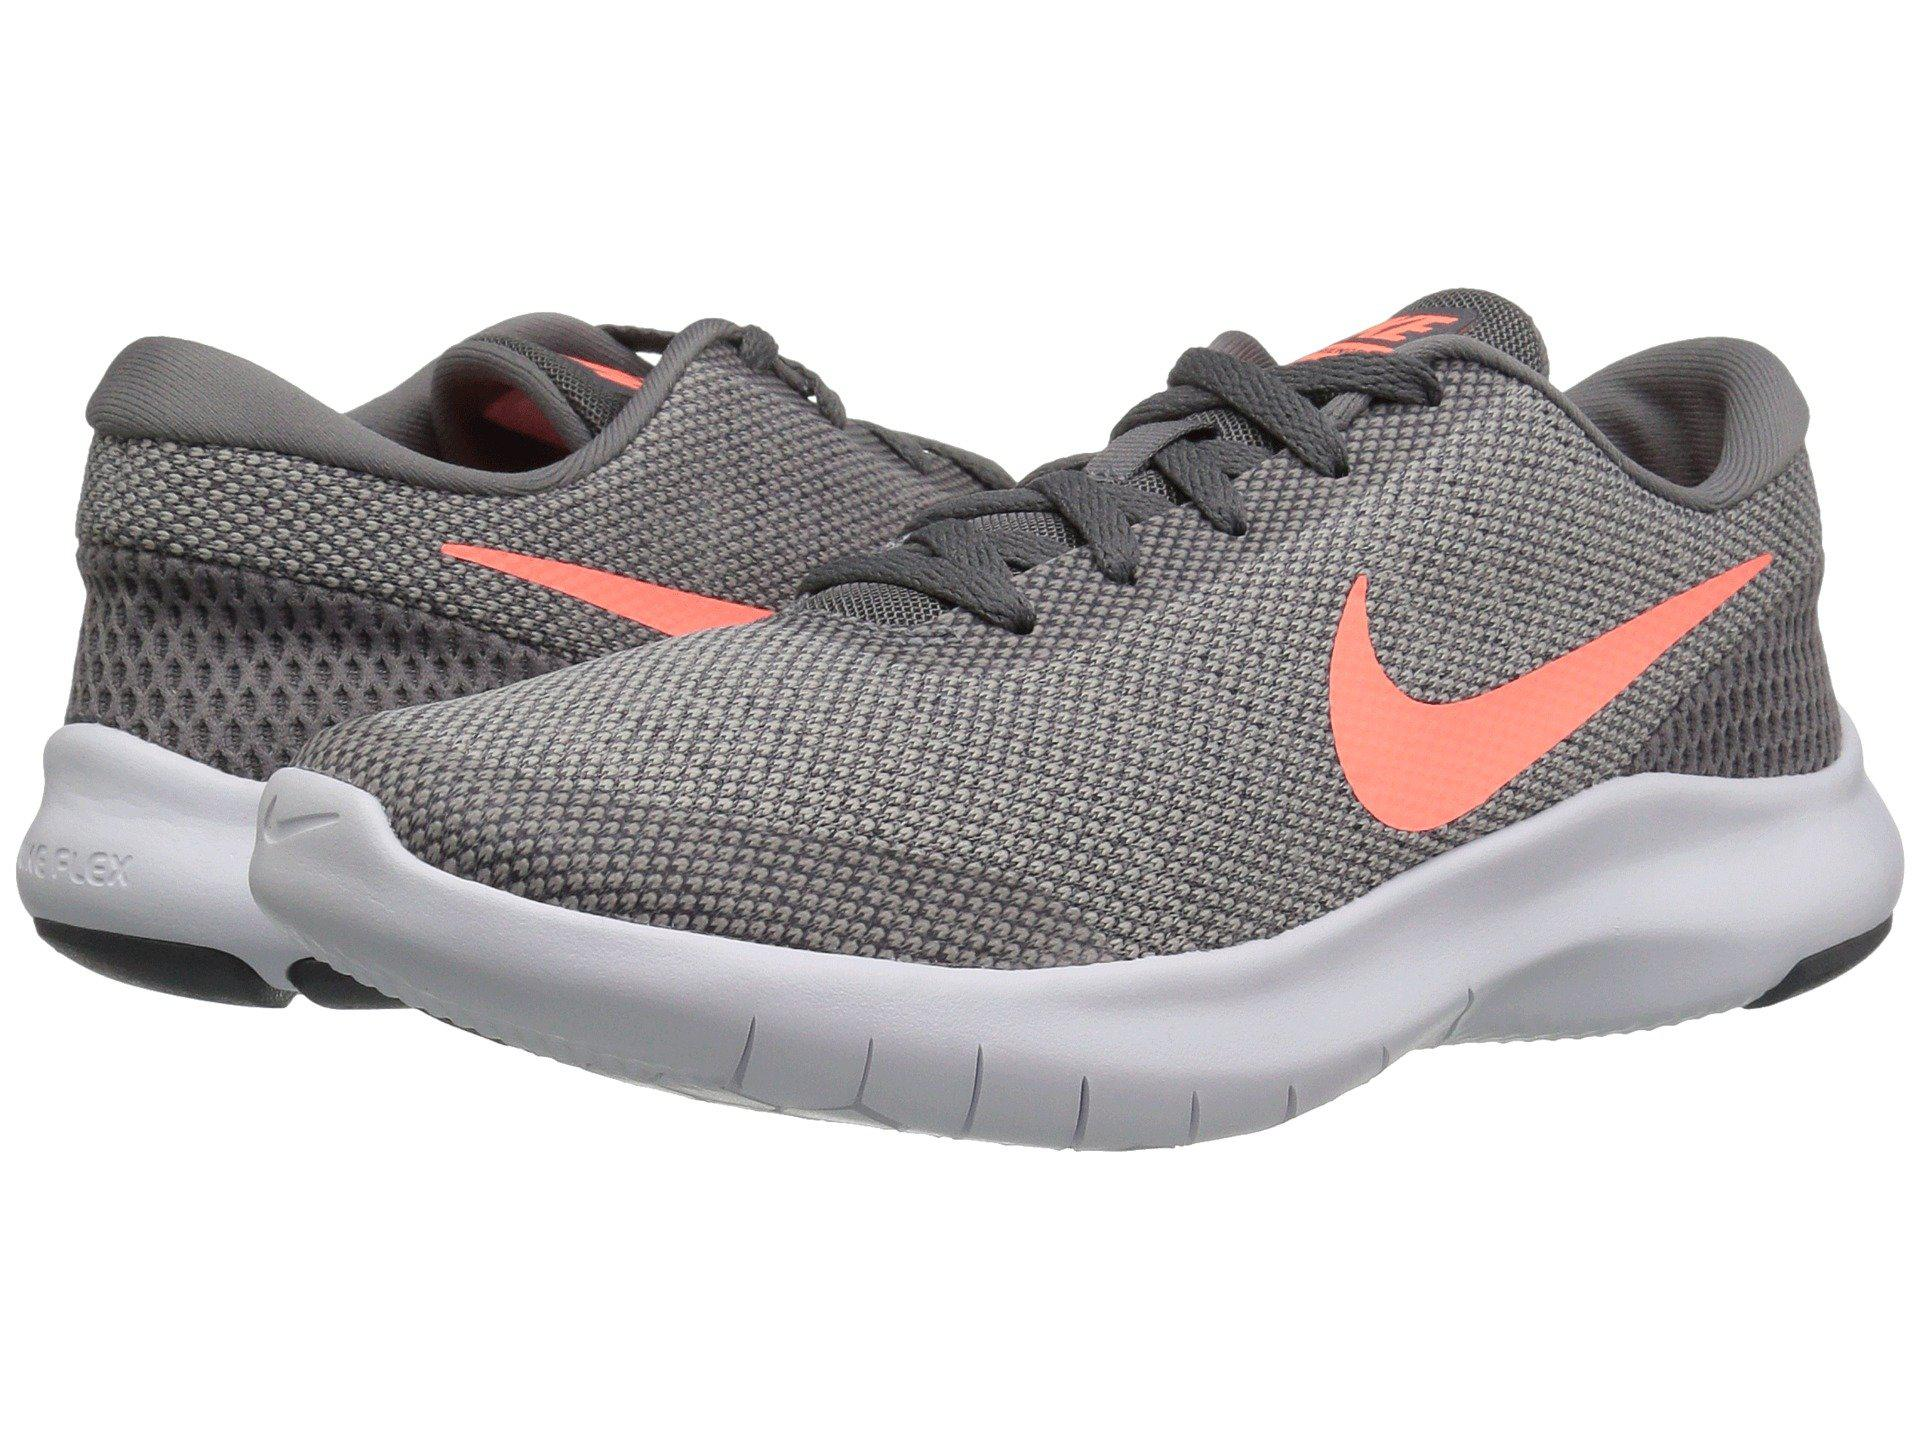 Nike Synthetic Flex Experience Rn 7 in Gray - Lyst